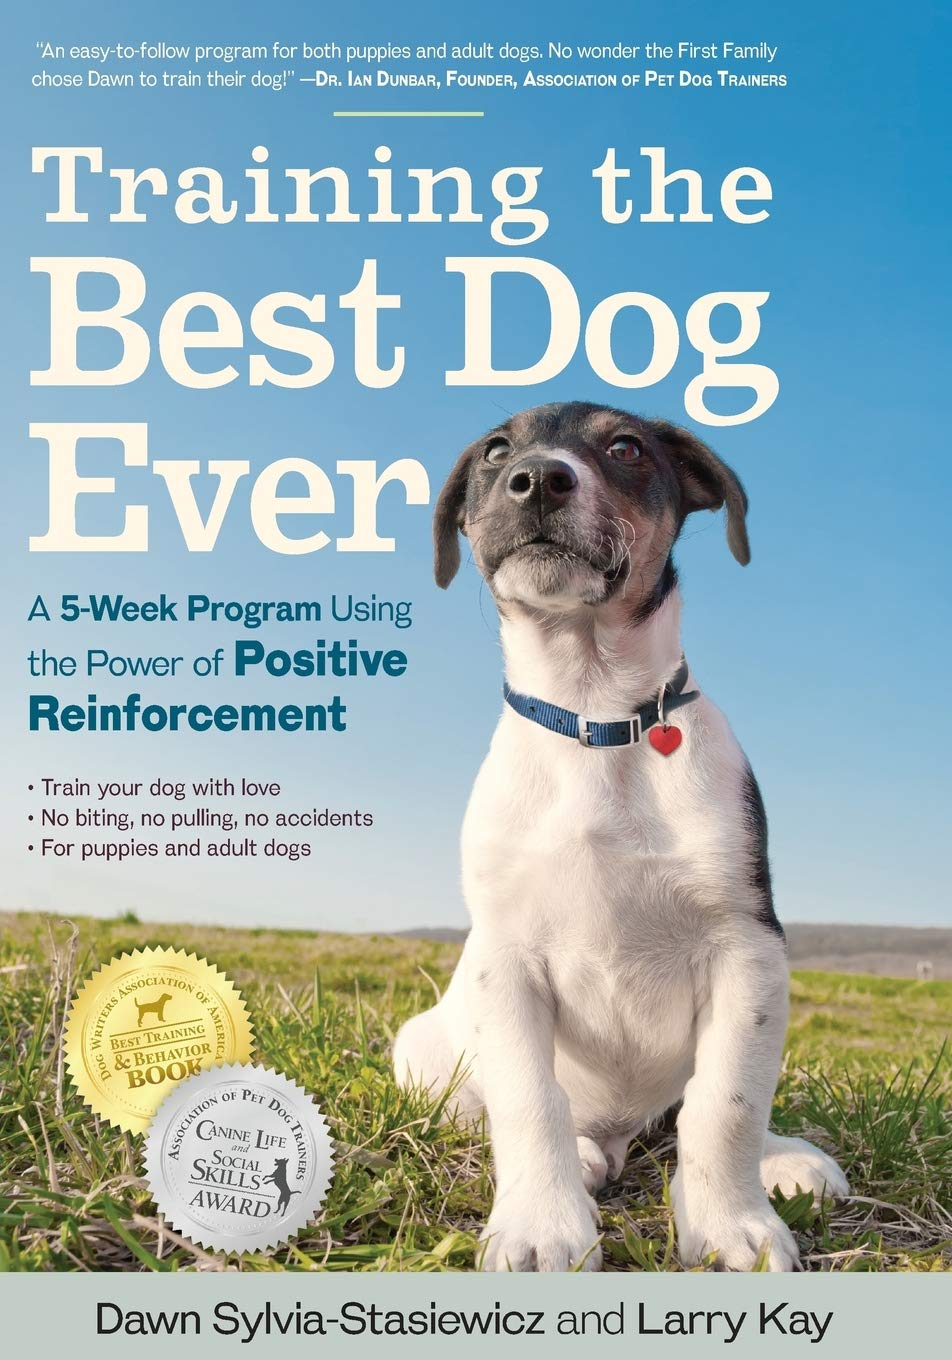 Training the Best Dog Ever: A 5-Week Program Using the Power of Positive Reinforcement by Workman Publishing Company